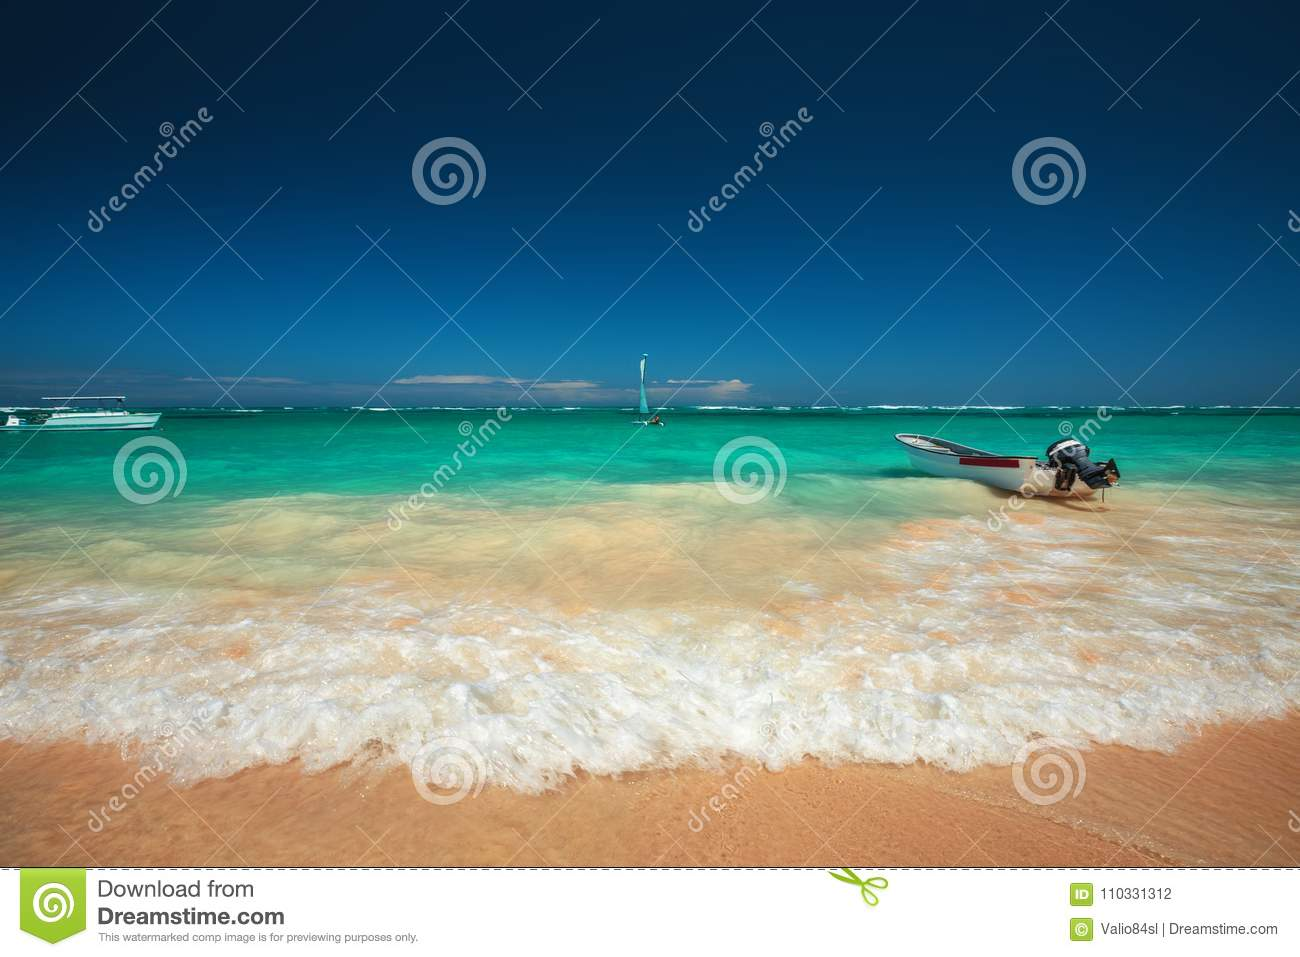 Caribbean sea and boat on the shore, beautiful panoramic view